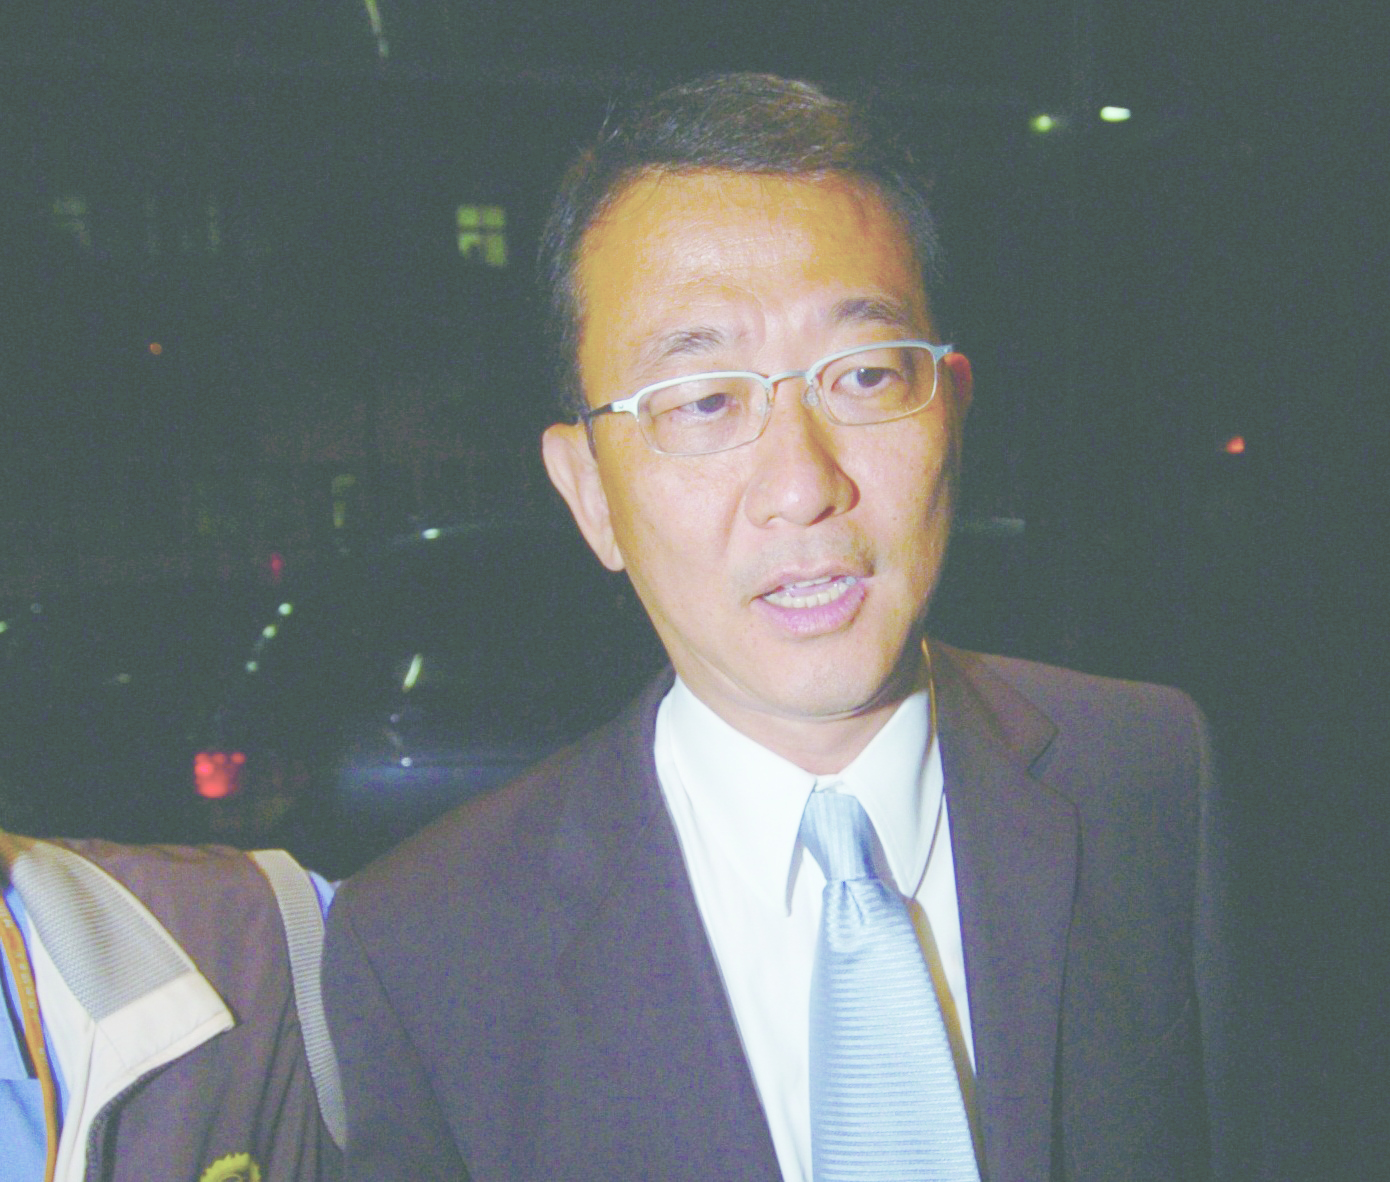 Fugitive ex-FAT chairman in suicide reports